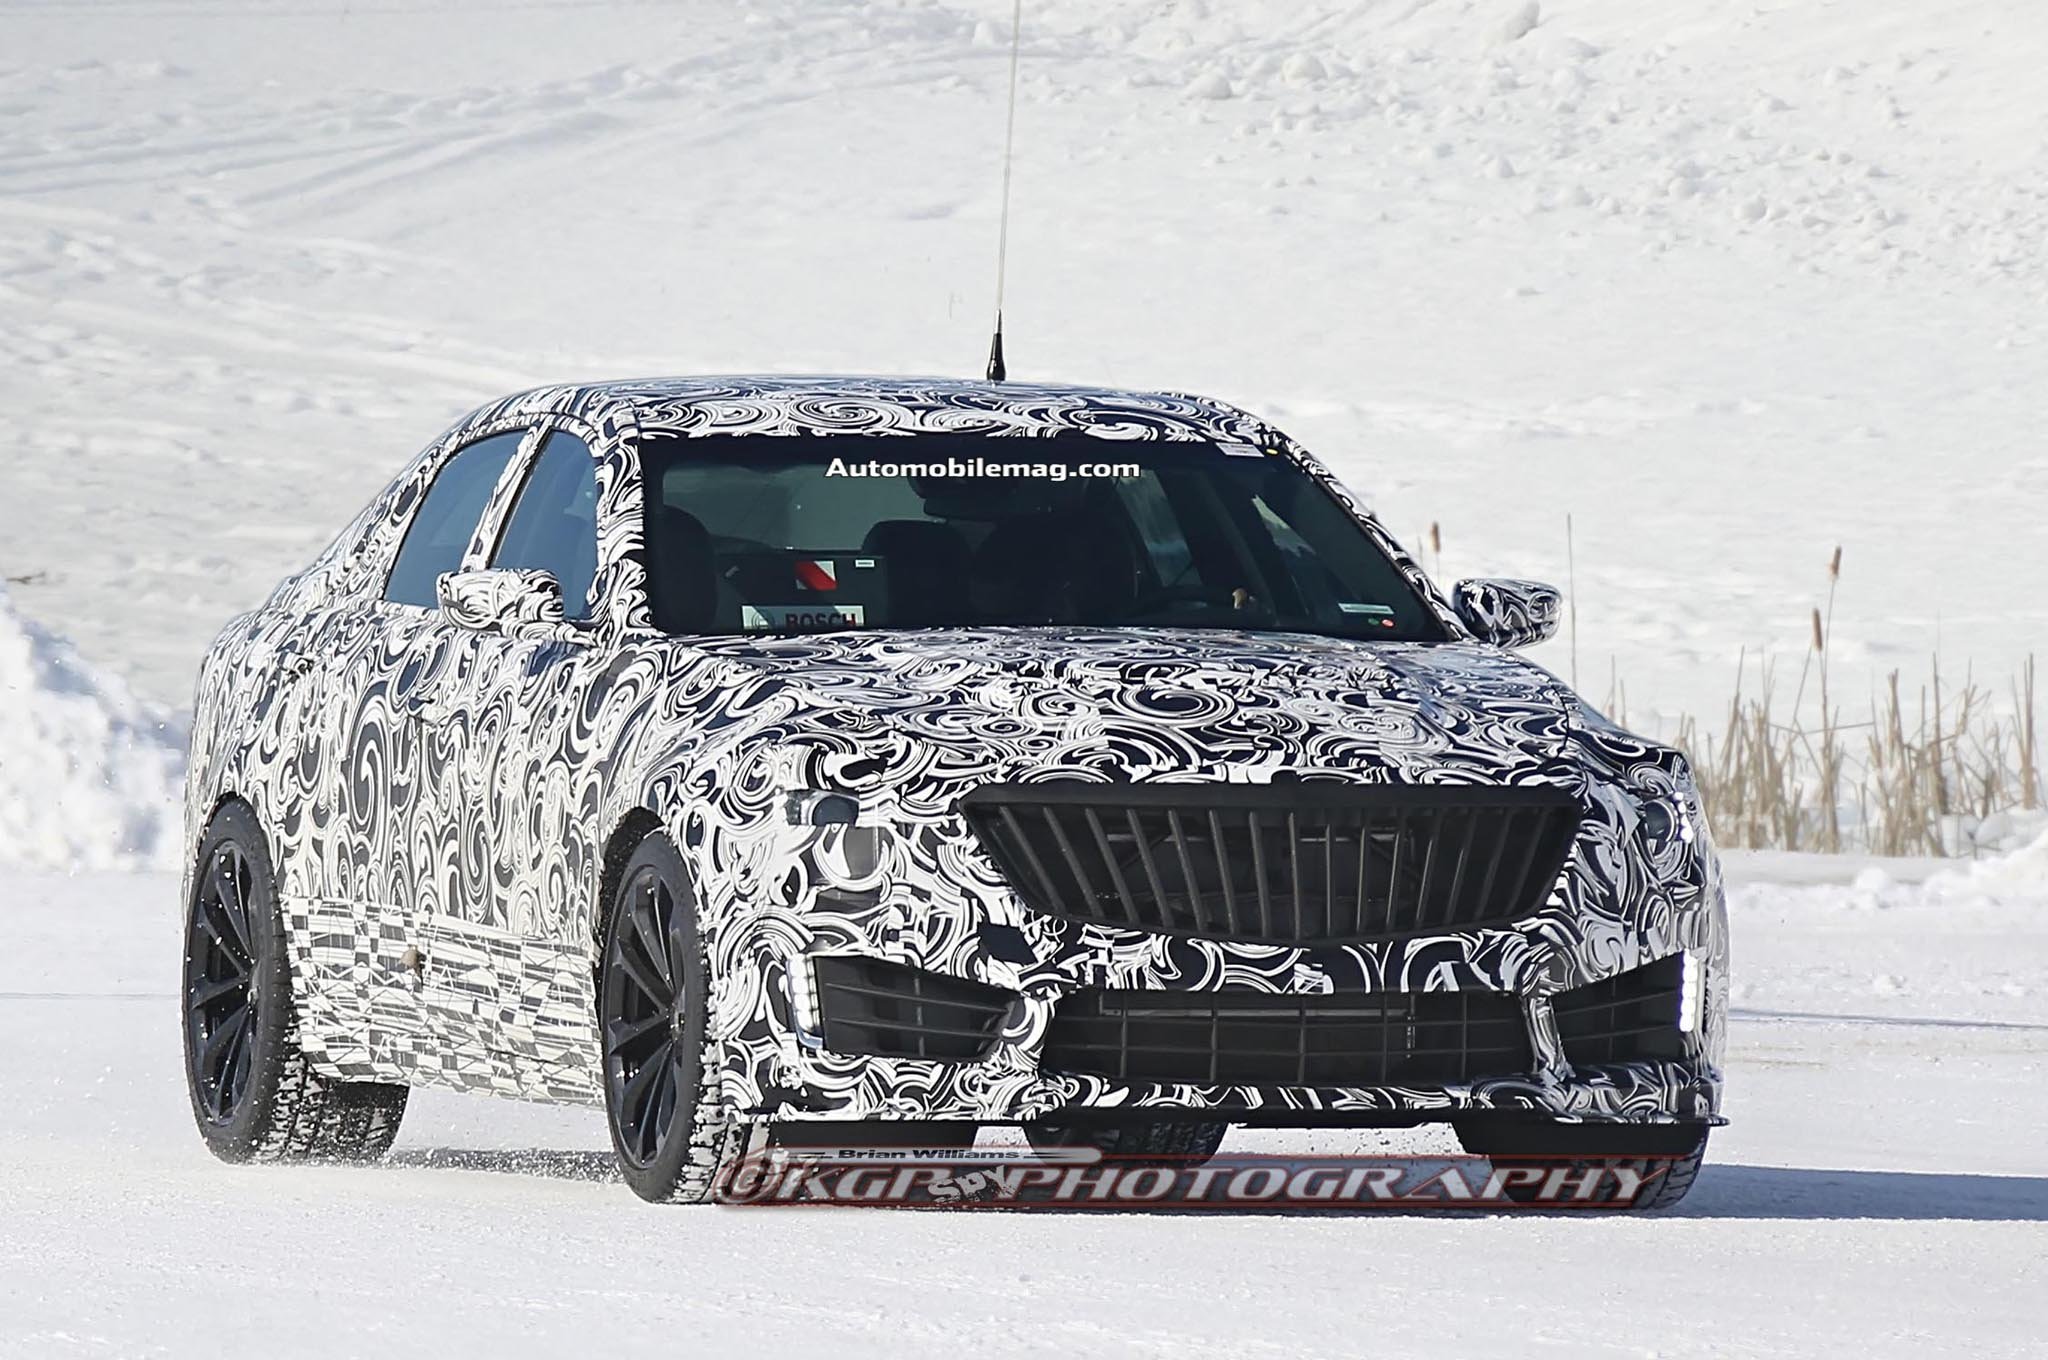 2016 Cadillac Cts V Spied Front Three Quarter 011